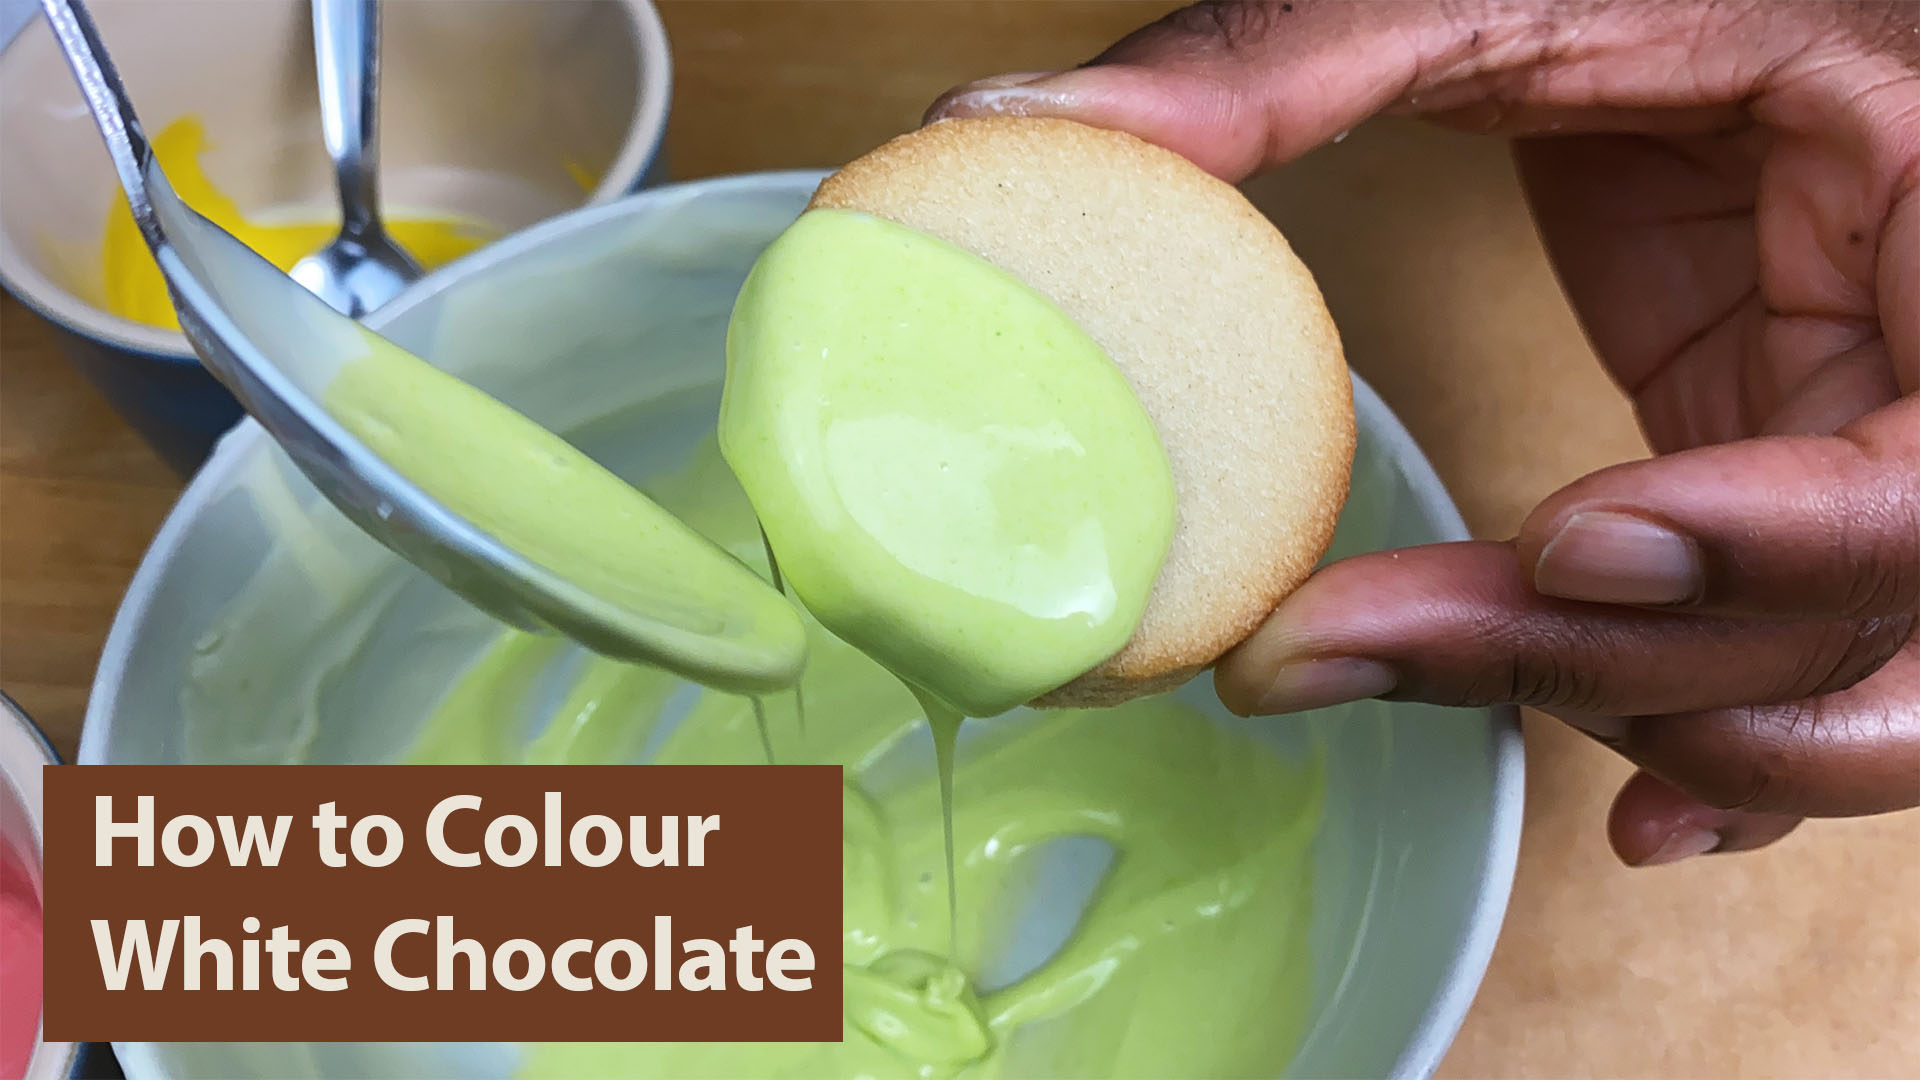 How to colour white chocolate